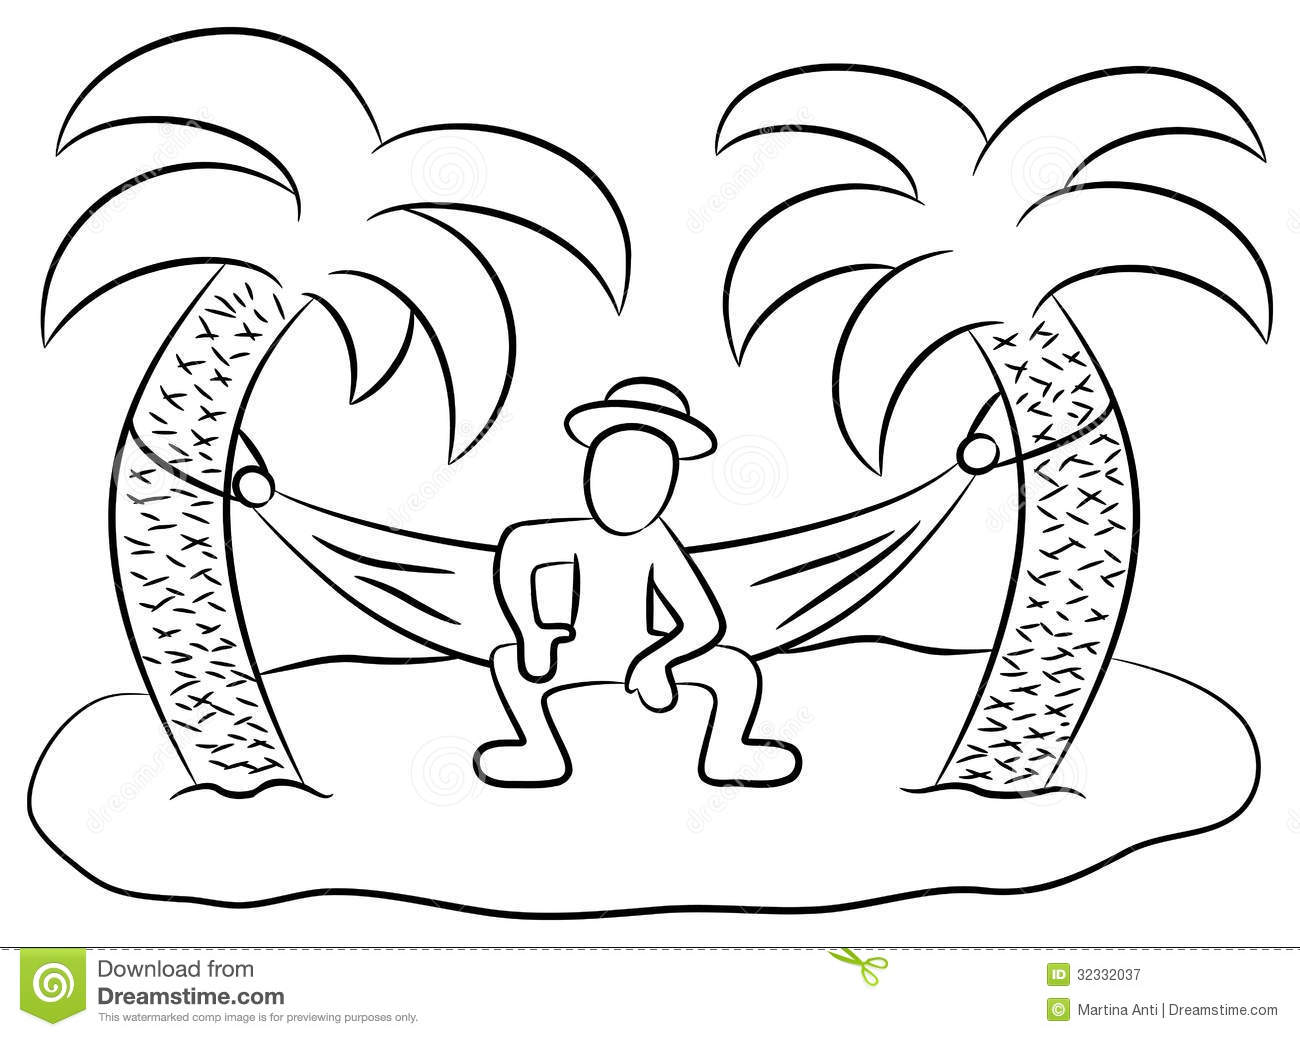 Desert island stock vector. Illustration of palm, doodle